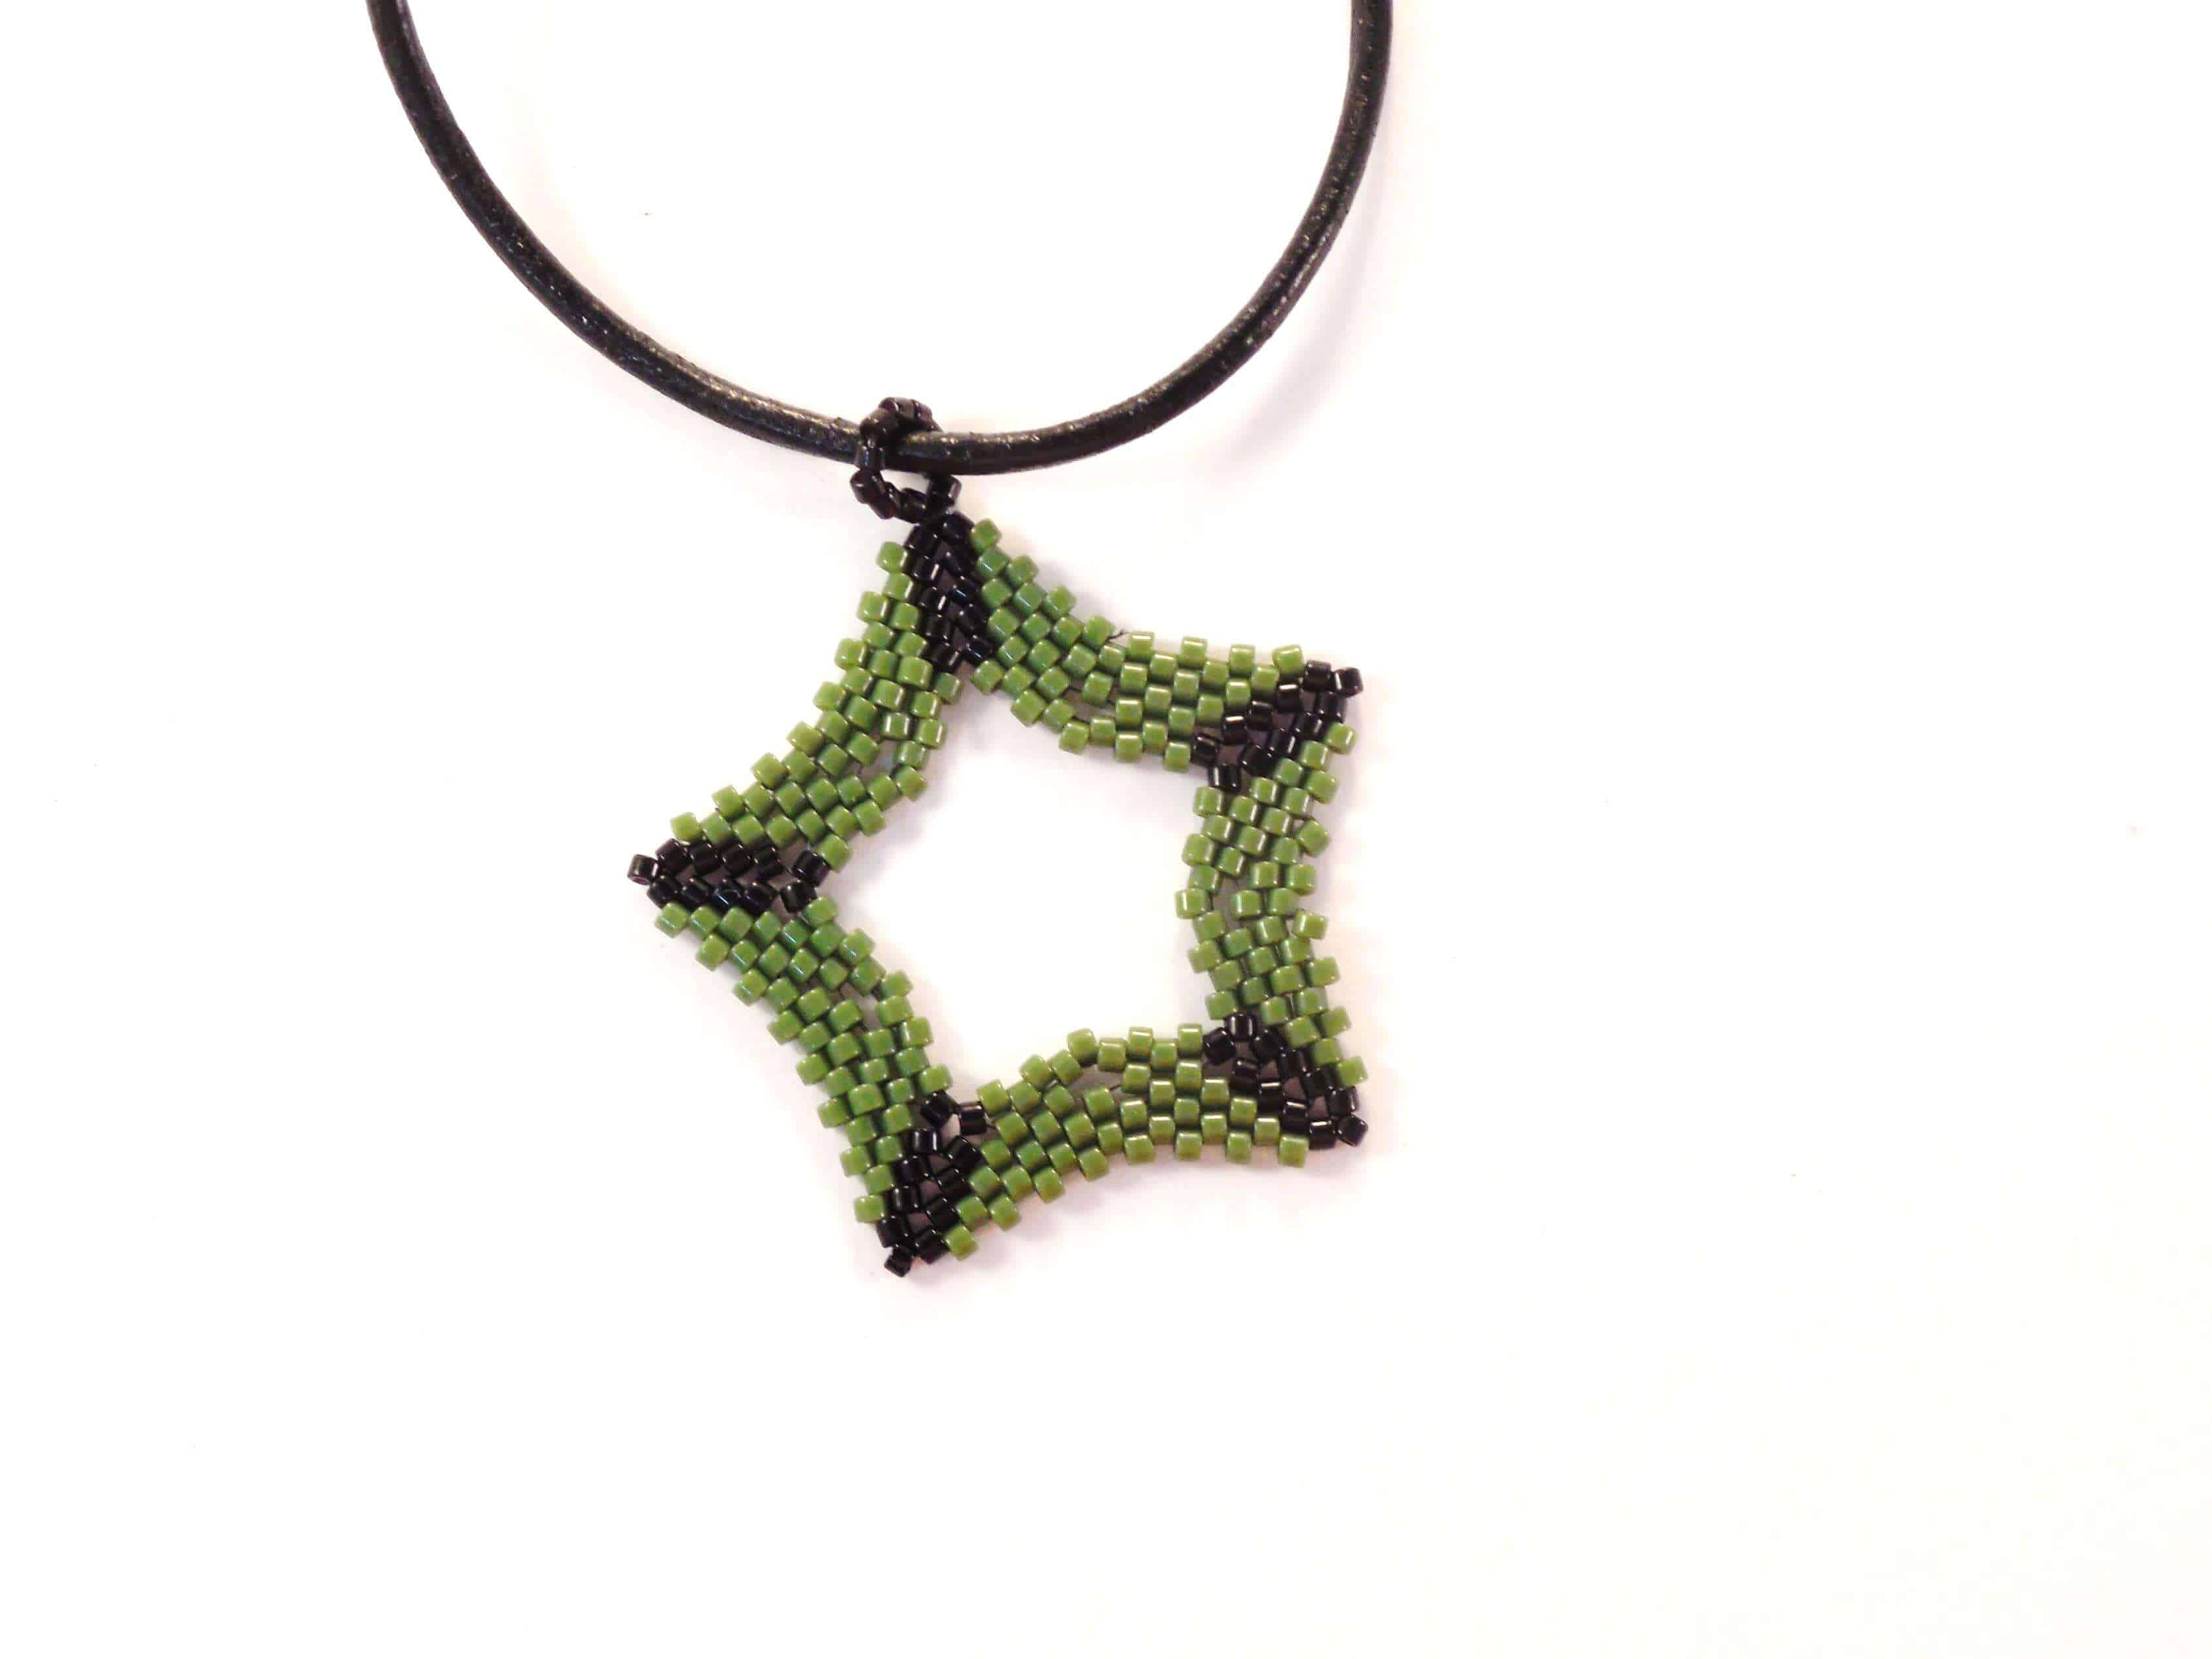 Five Pointed Star Ornament - The Bead Club Lounge